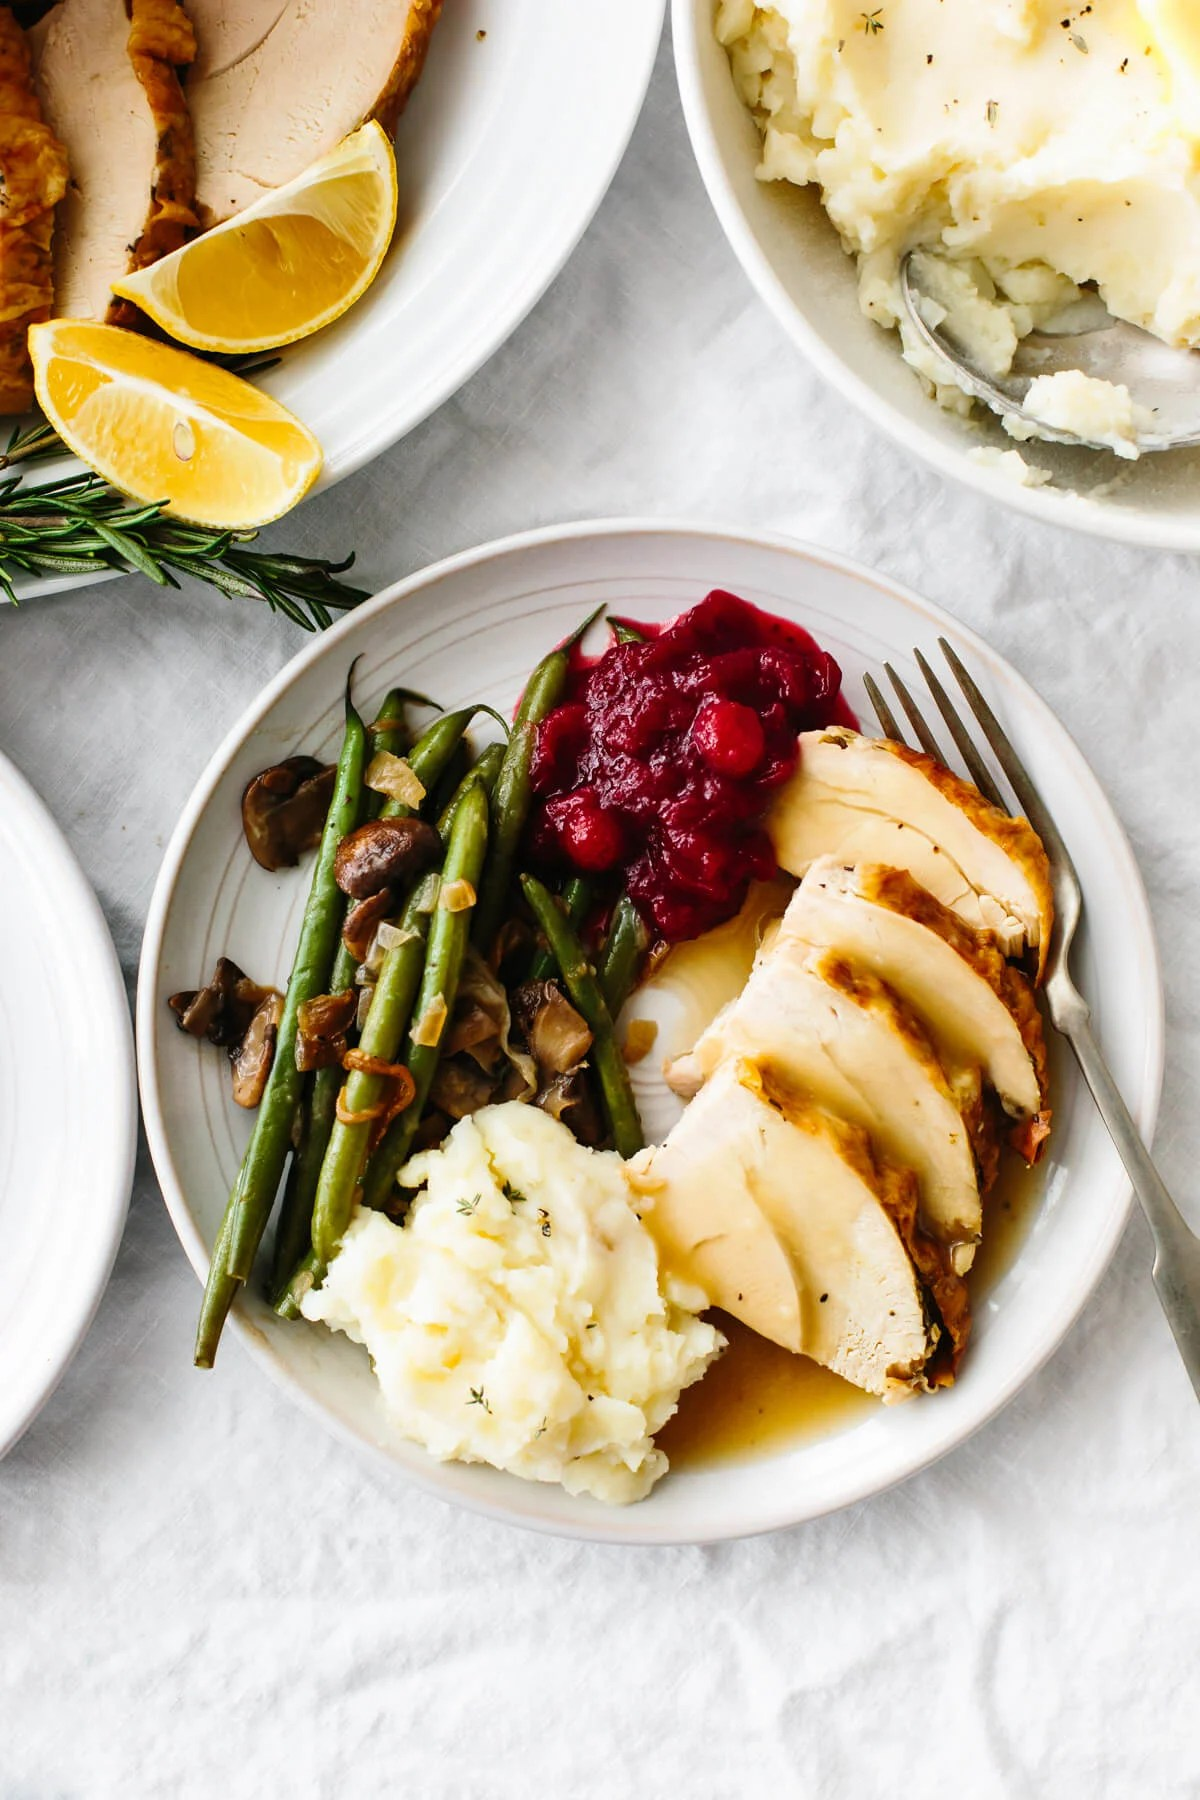 A plate of Thanksgiving side dishes and roasted turkey.